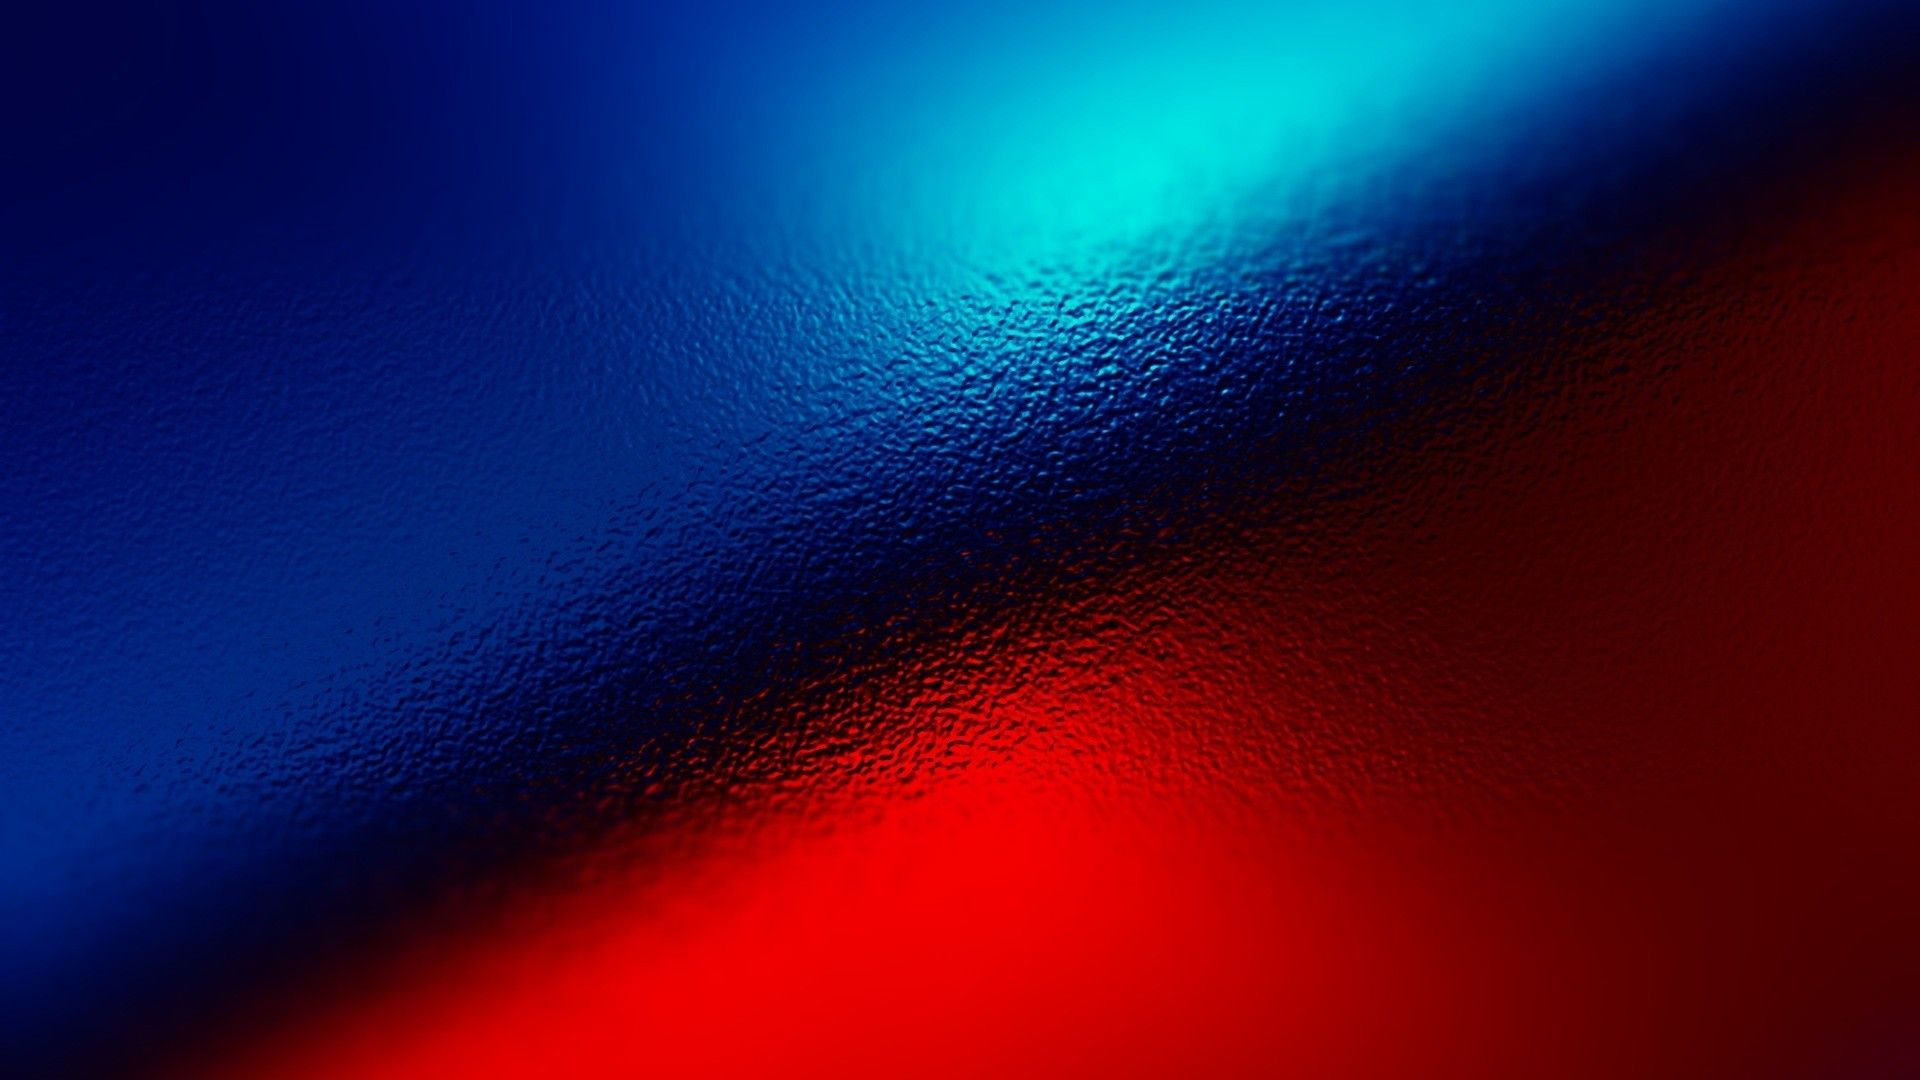 Pin By Anton On Beer Red Wallpaper Blue Wallpapers Red